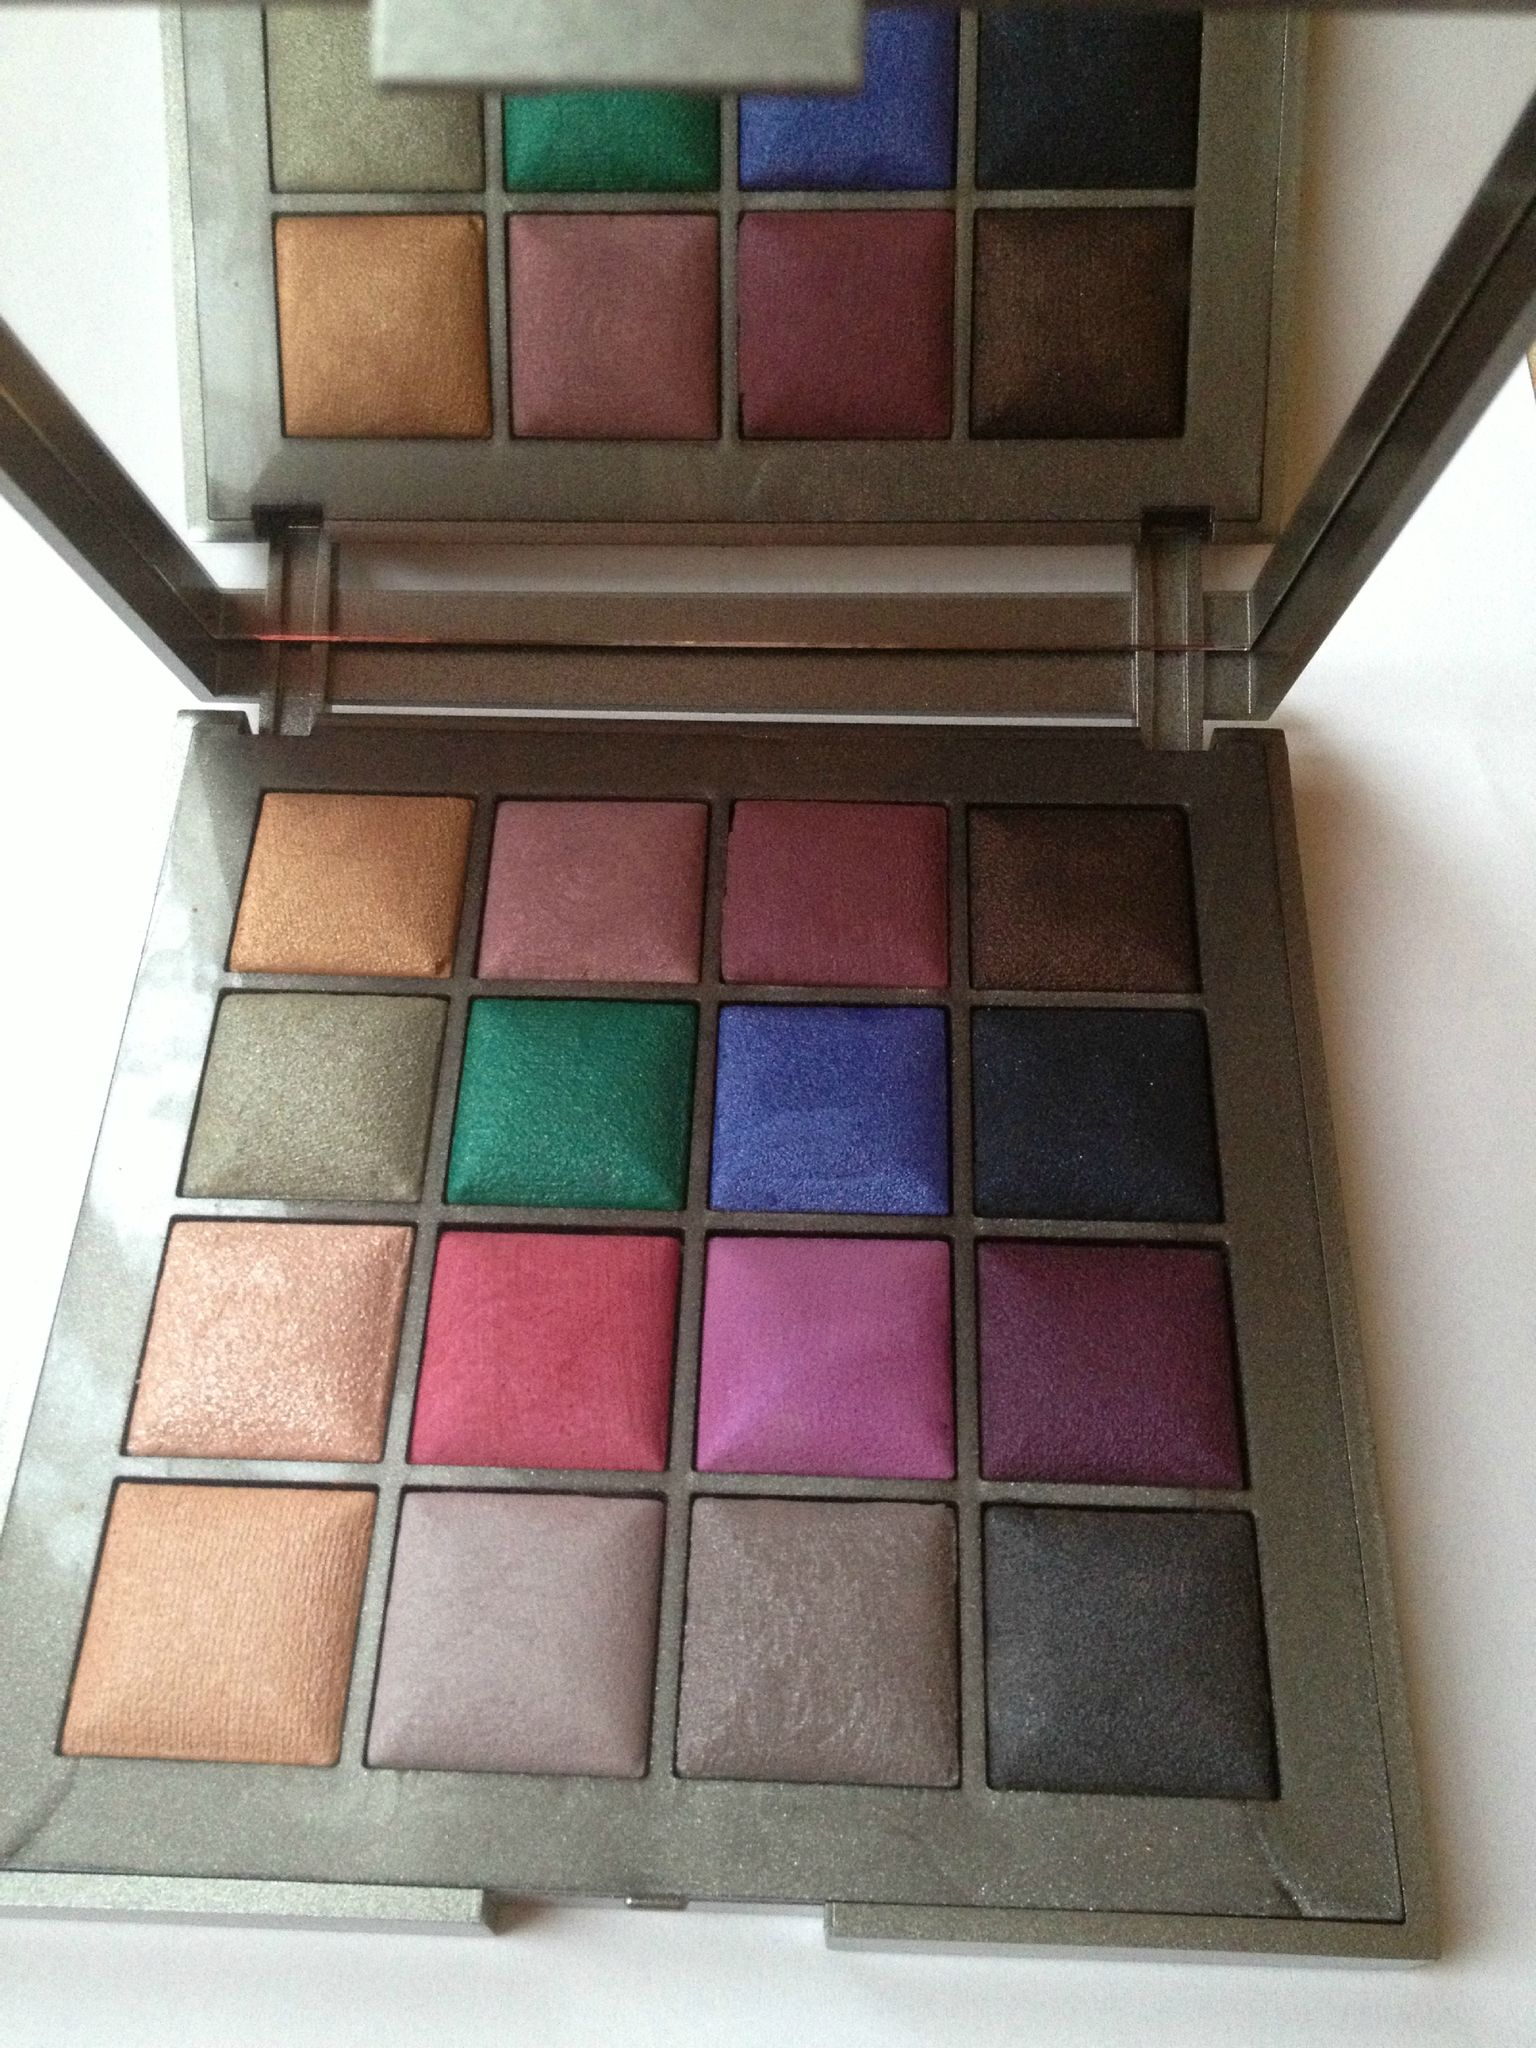 Kiko , Color Fever Must Have Eyeshadow Palette